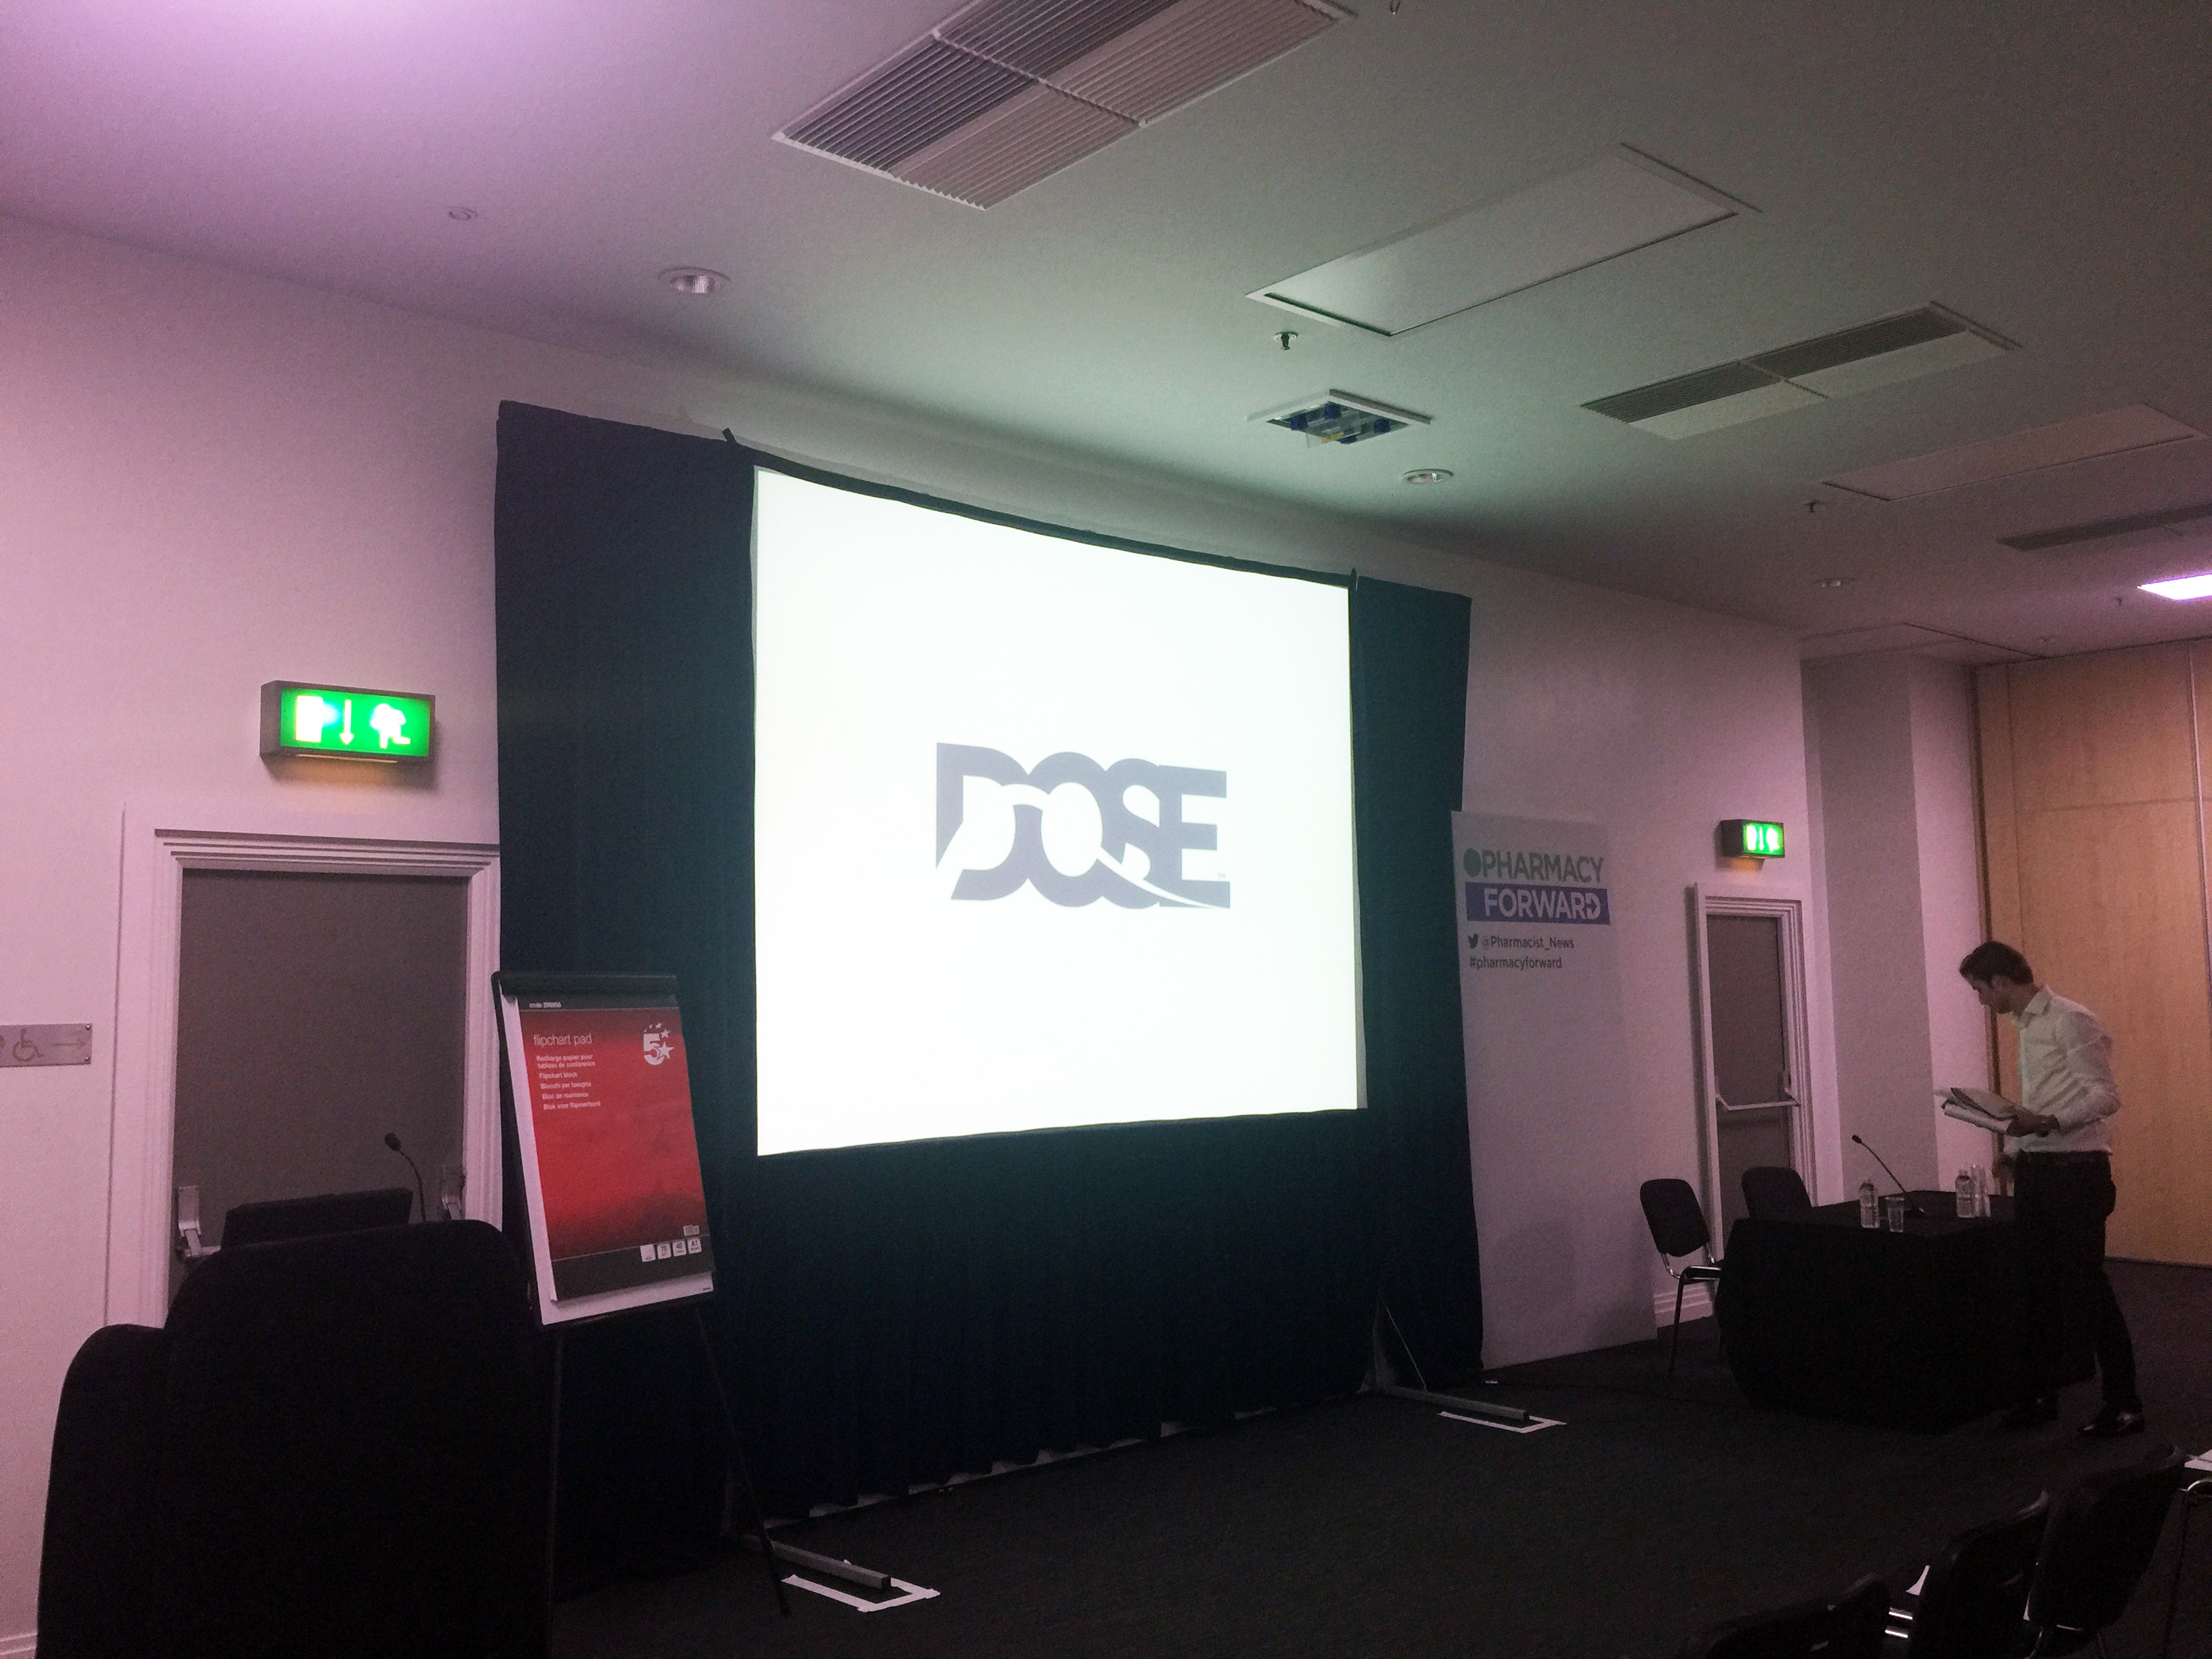 DOSE Design and Marketing Pharmacy Forward Presentation